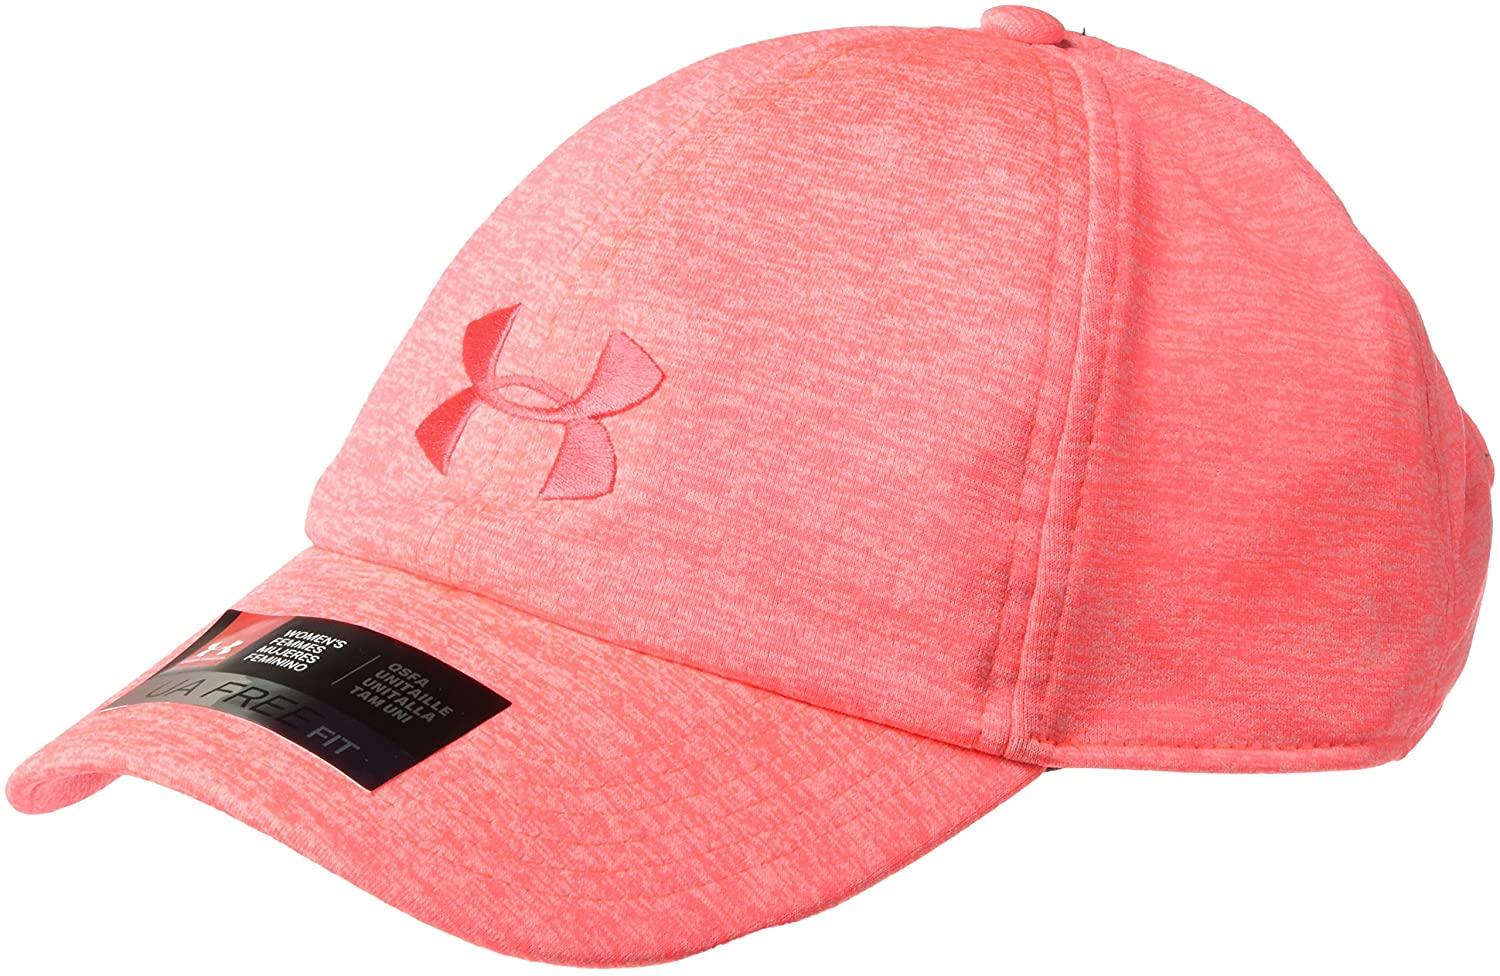 2153aaf6d9 Under Armour Women's Twisted Renegade Cap, Brilliance (819)/Coral Cove, One  Size